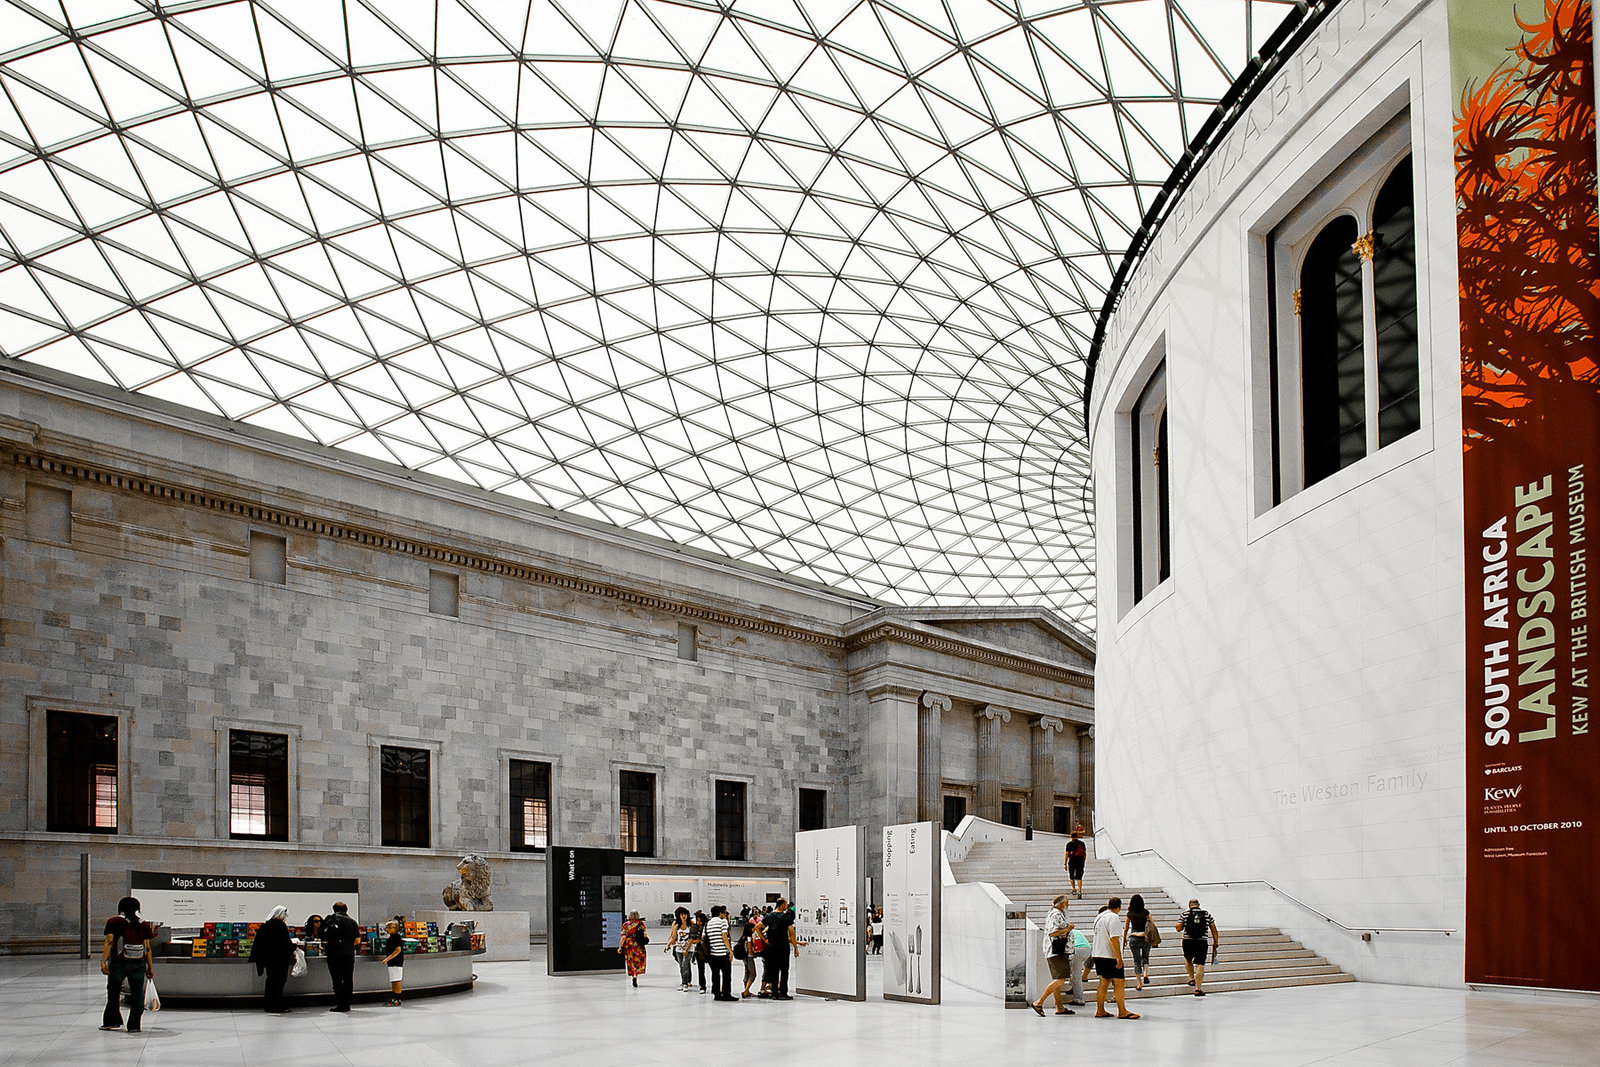 uk_london_BritishMuseum-Atrium01